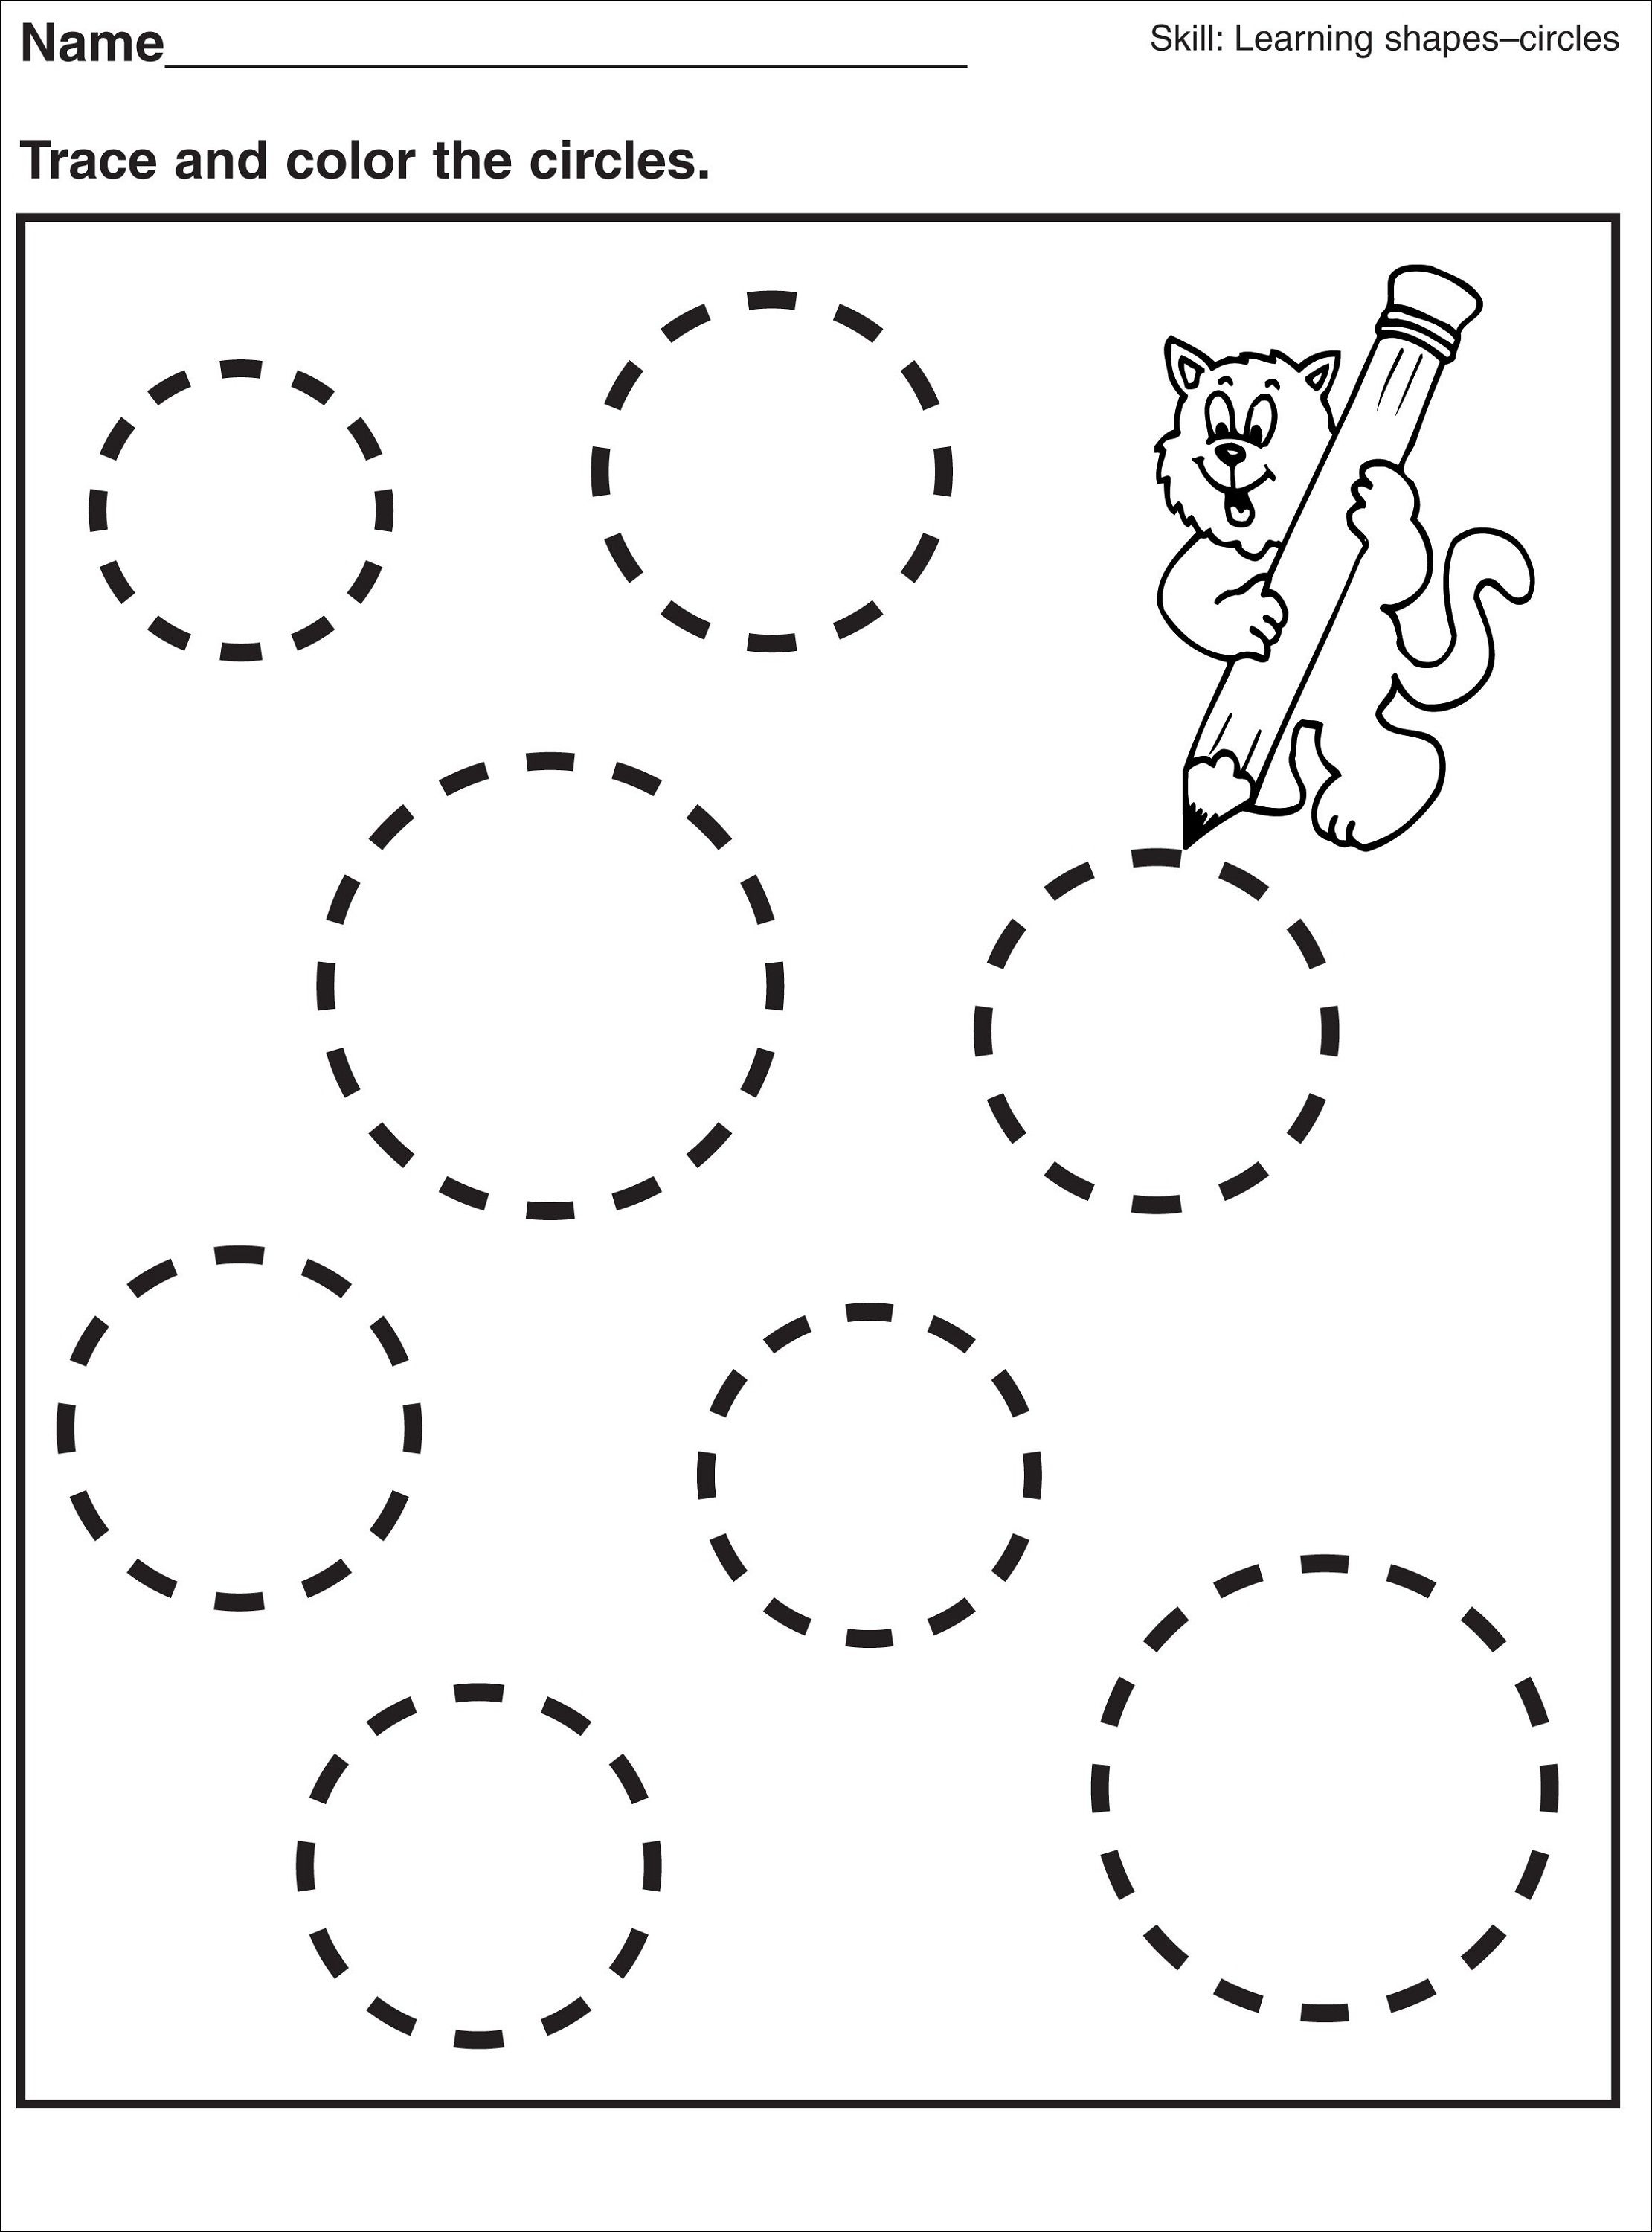 Tracing Pages For Preschool | Kids Worksheets Printable | Preschool - Free Printable Preschool Name Tracer Pages